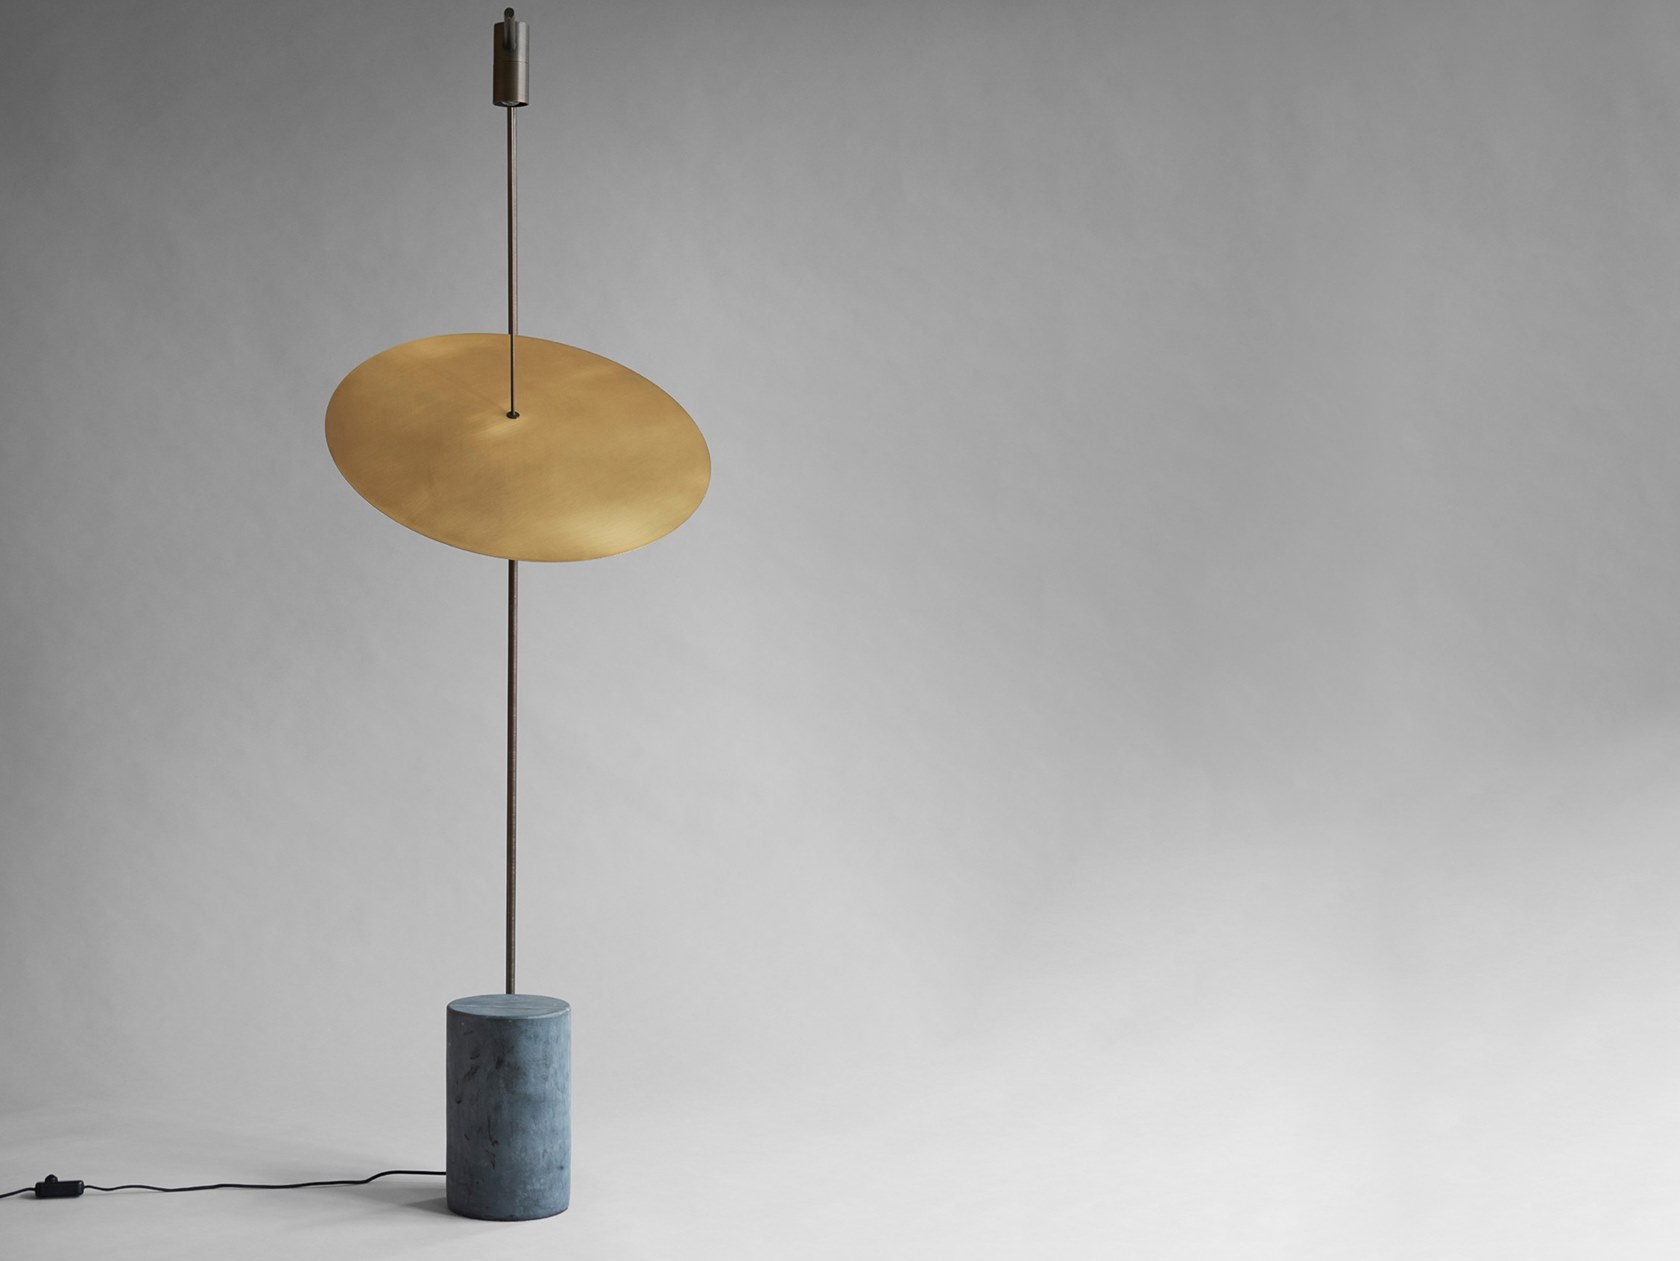 The Moon Floor Lamp - The Moon is a minimalistic floor lamp inspired by minimal arts and industrial sculptures. The lamp is a carefully constructed geometry, where each component is perfectly weighted in relation to each other.  The lamp has two light sources placed as compositional fix points along an oxidized brass arm. A large circular lampshade is hanging from the lamp arm as a floating reflector in the space. The reflector lampshade of brushed brass is illuminated on both sides and creates a warm and soft light setting. The lamp is mounted to the cylindrical base of unpolished black marble in order to stabilize the structure.  | Matter of Stuff